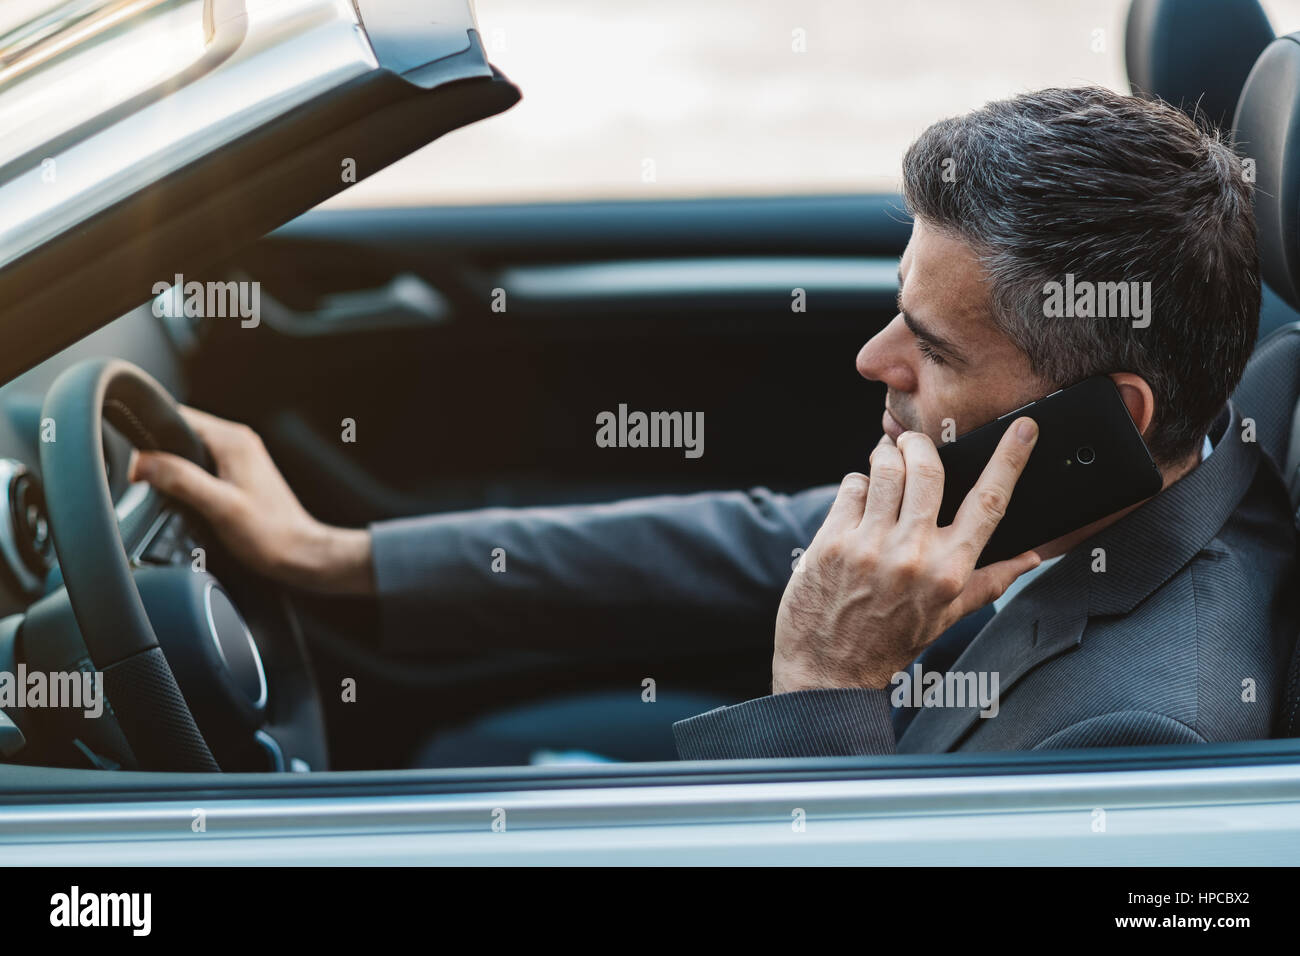 Businessman driving a luxury convertible car and having business phone calls using his smartphone Stock Photo